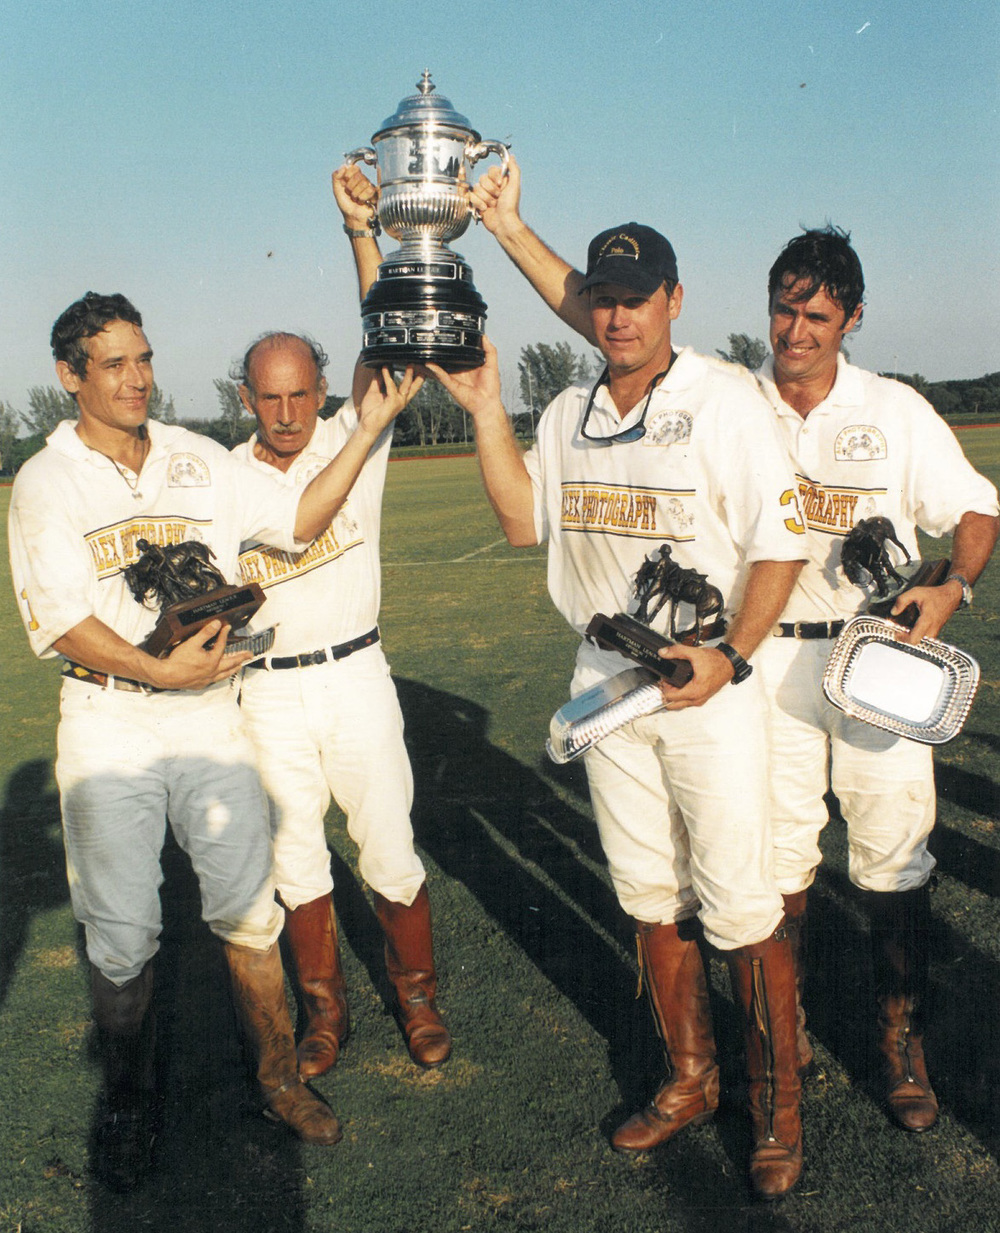 Horacio Areco, Jorge Areco, Juan Badiola and Joey Casey – Winners of the 1996 Hartman league